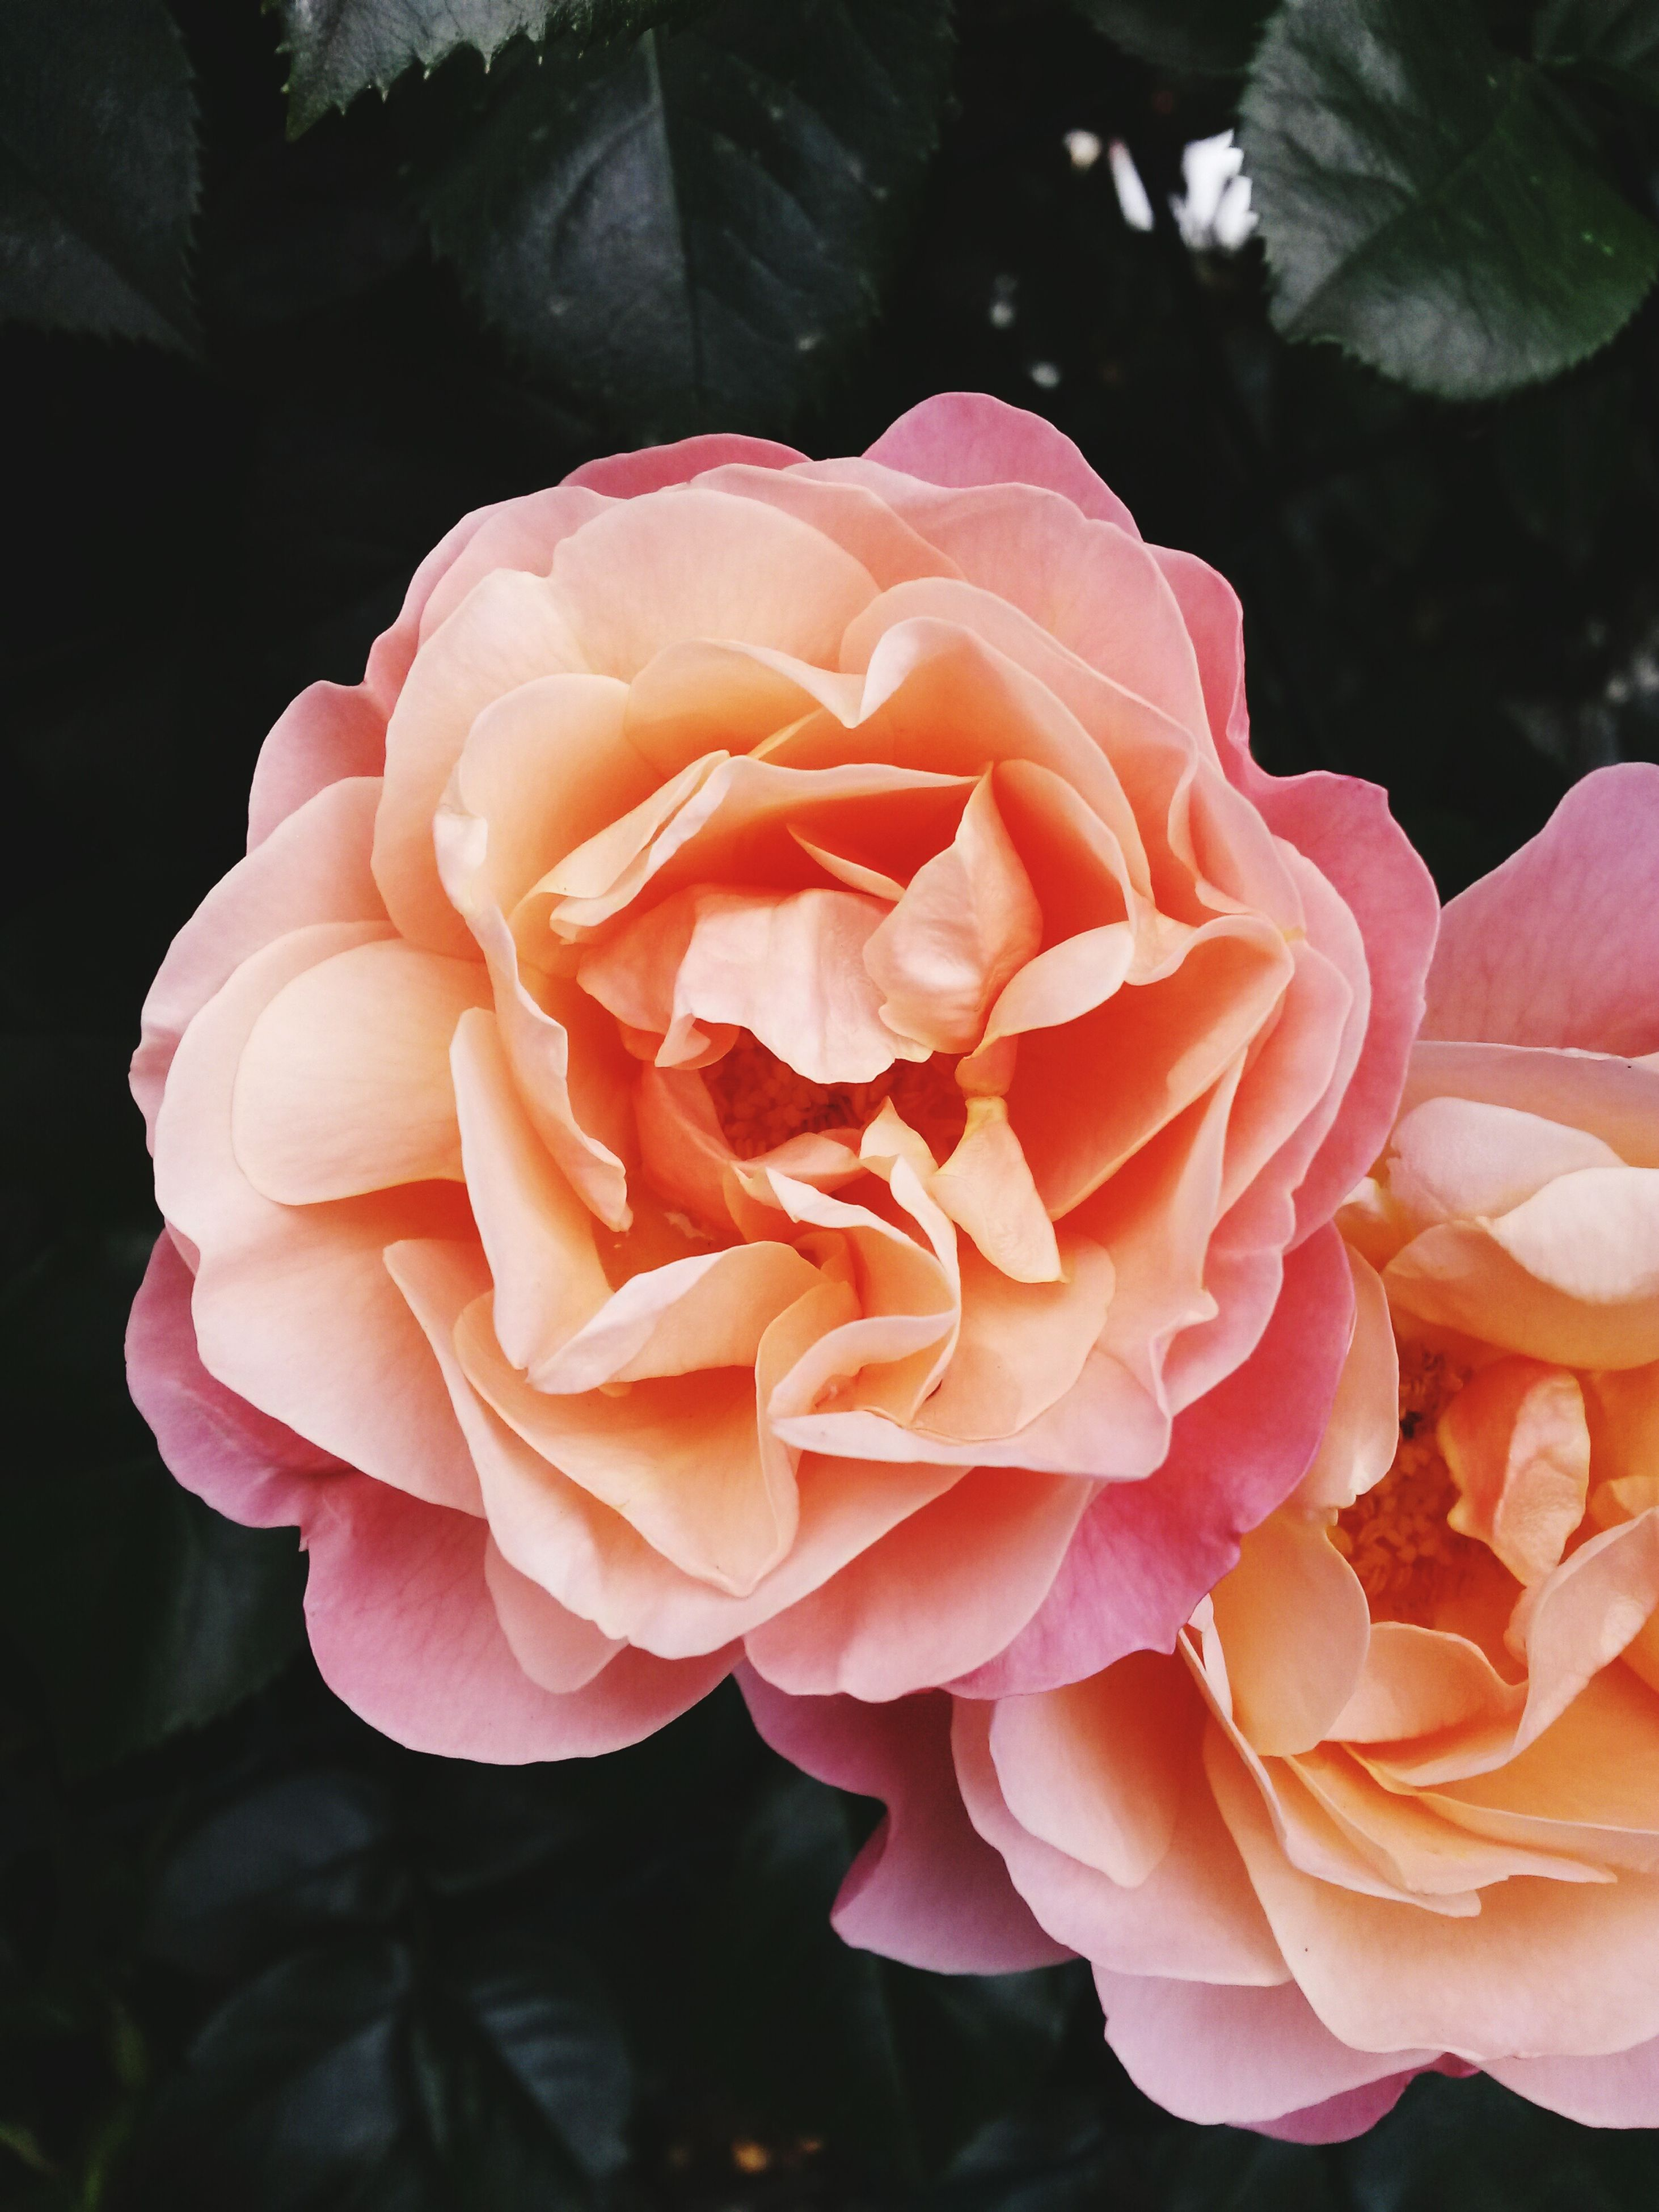 flower, petal, freshness, flower head, fragility, rose - flower, beauty in nature, growth, close-up, nature, blooming, single flower, rose, in bloom, pink color, focus on foreground, plant, blossom, single rose, no people